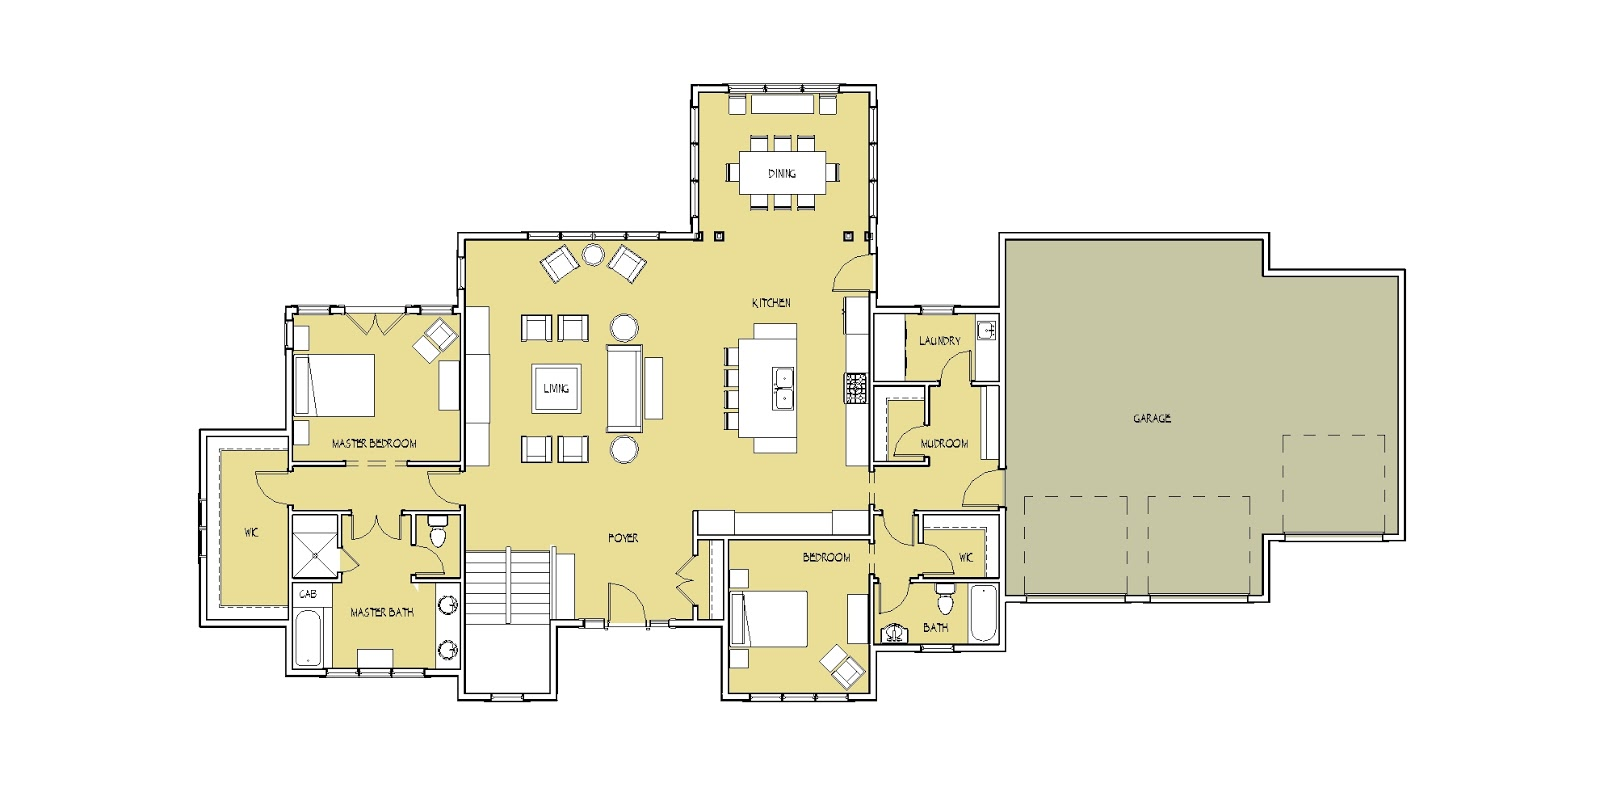 Simply elegant home designs blog january 2013 for Main level floor plans